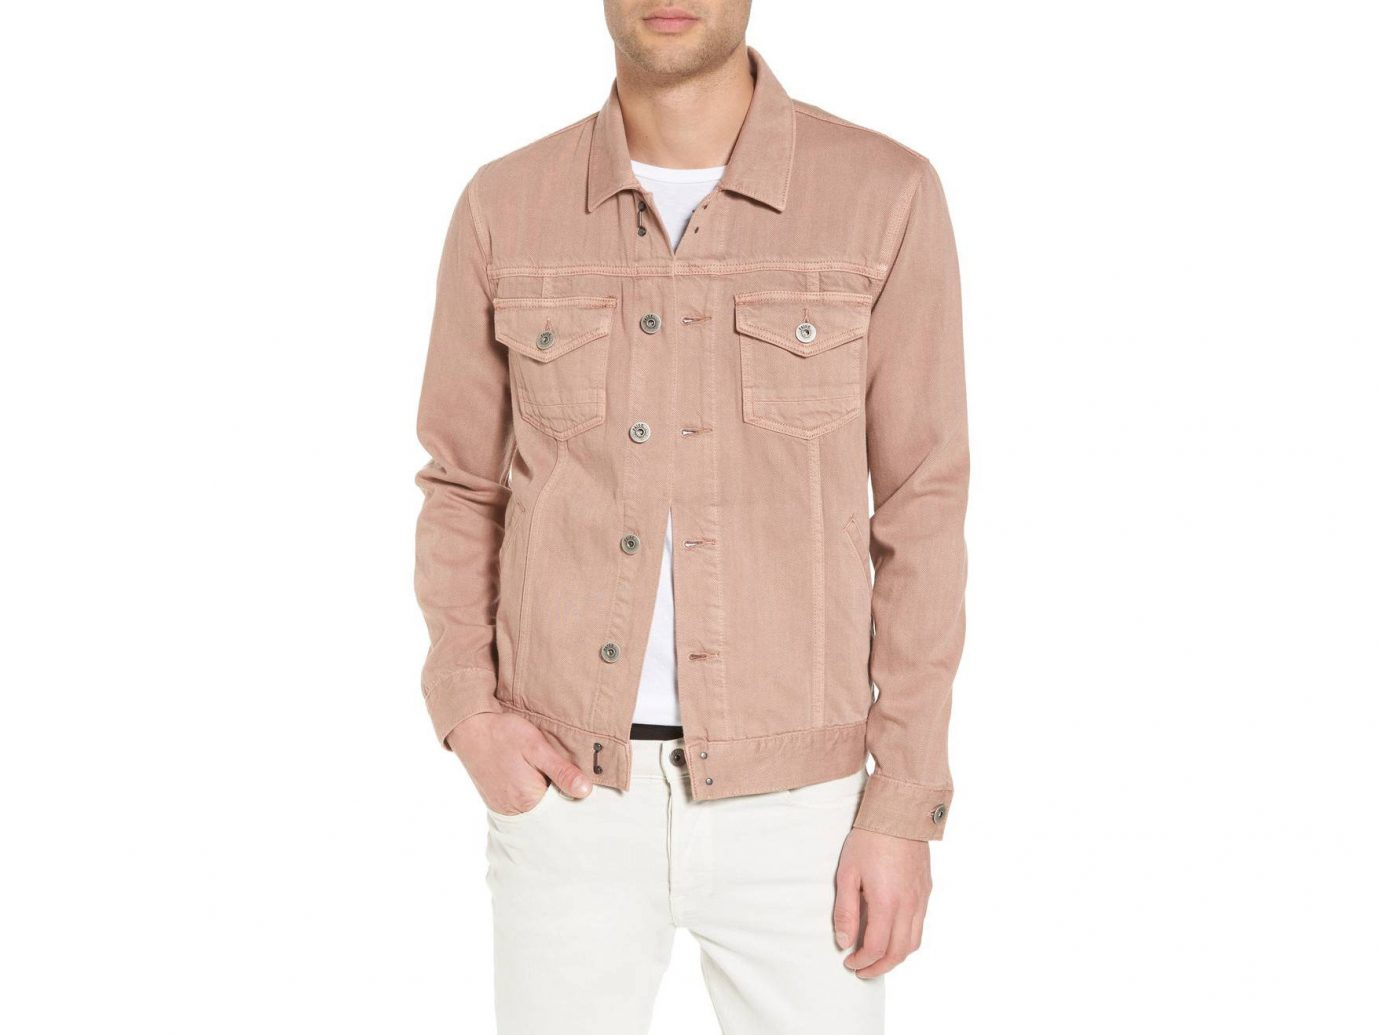 940b8442f218f Style + Design Travel Shop person man clothing standing sleeve posing jacket  wearing beige suit button